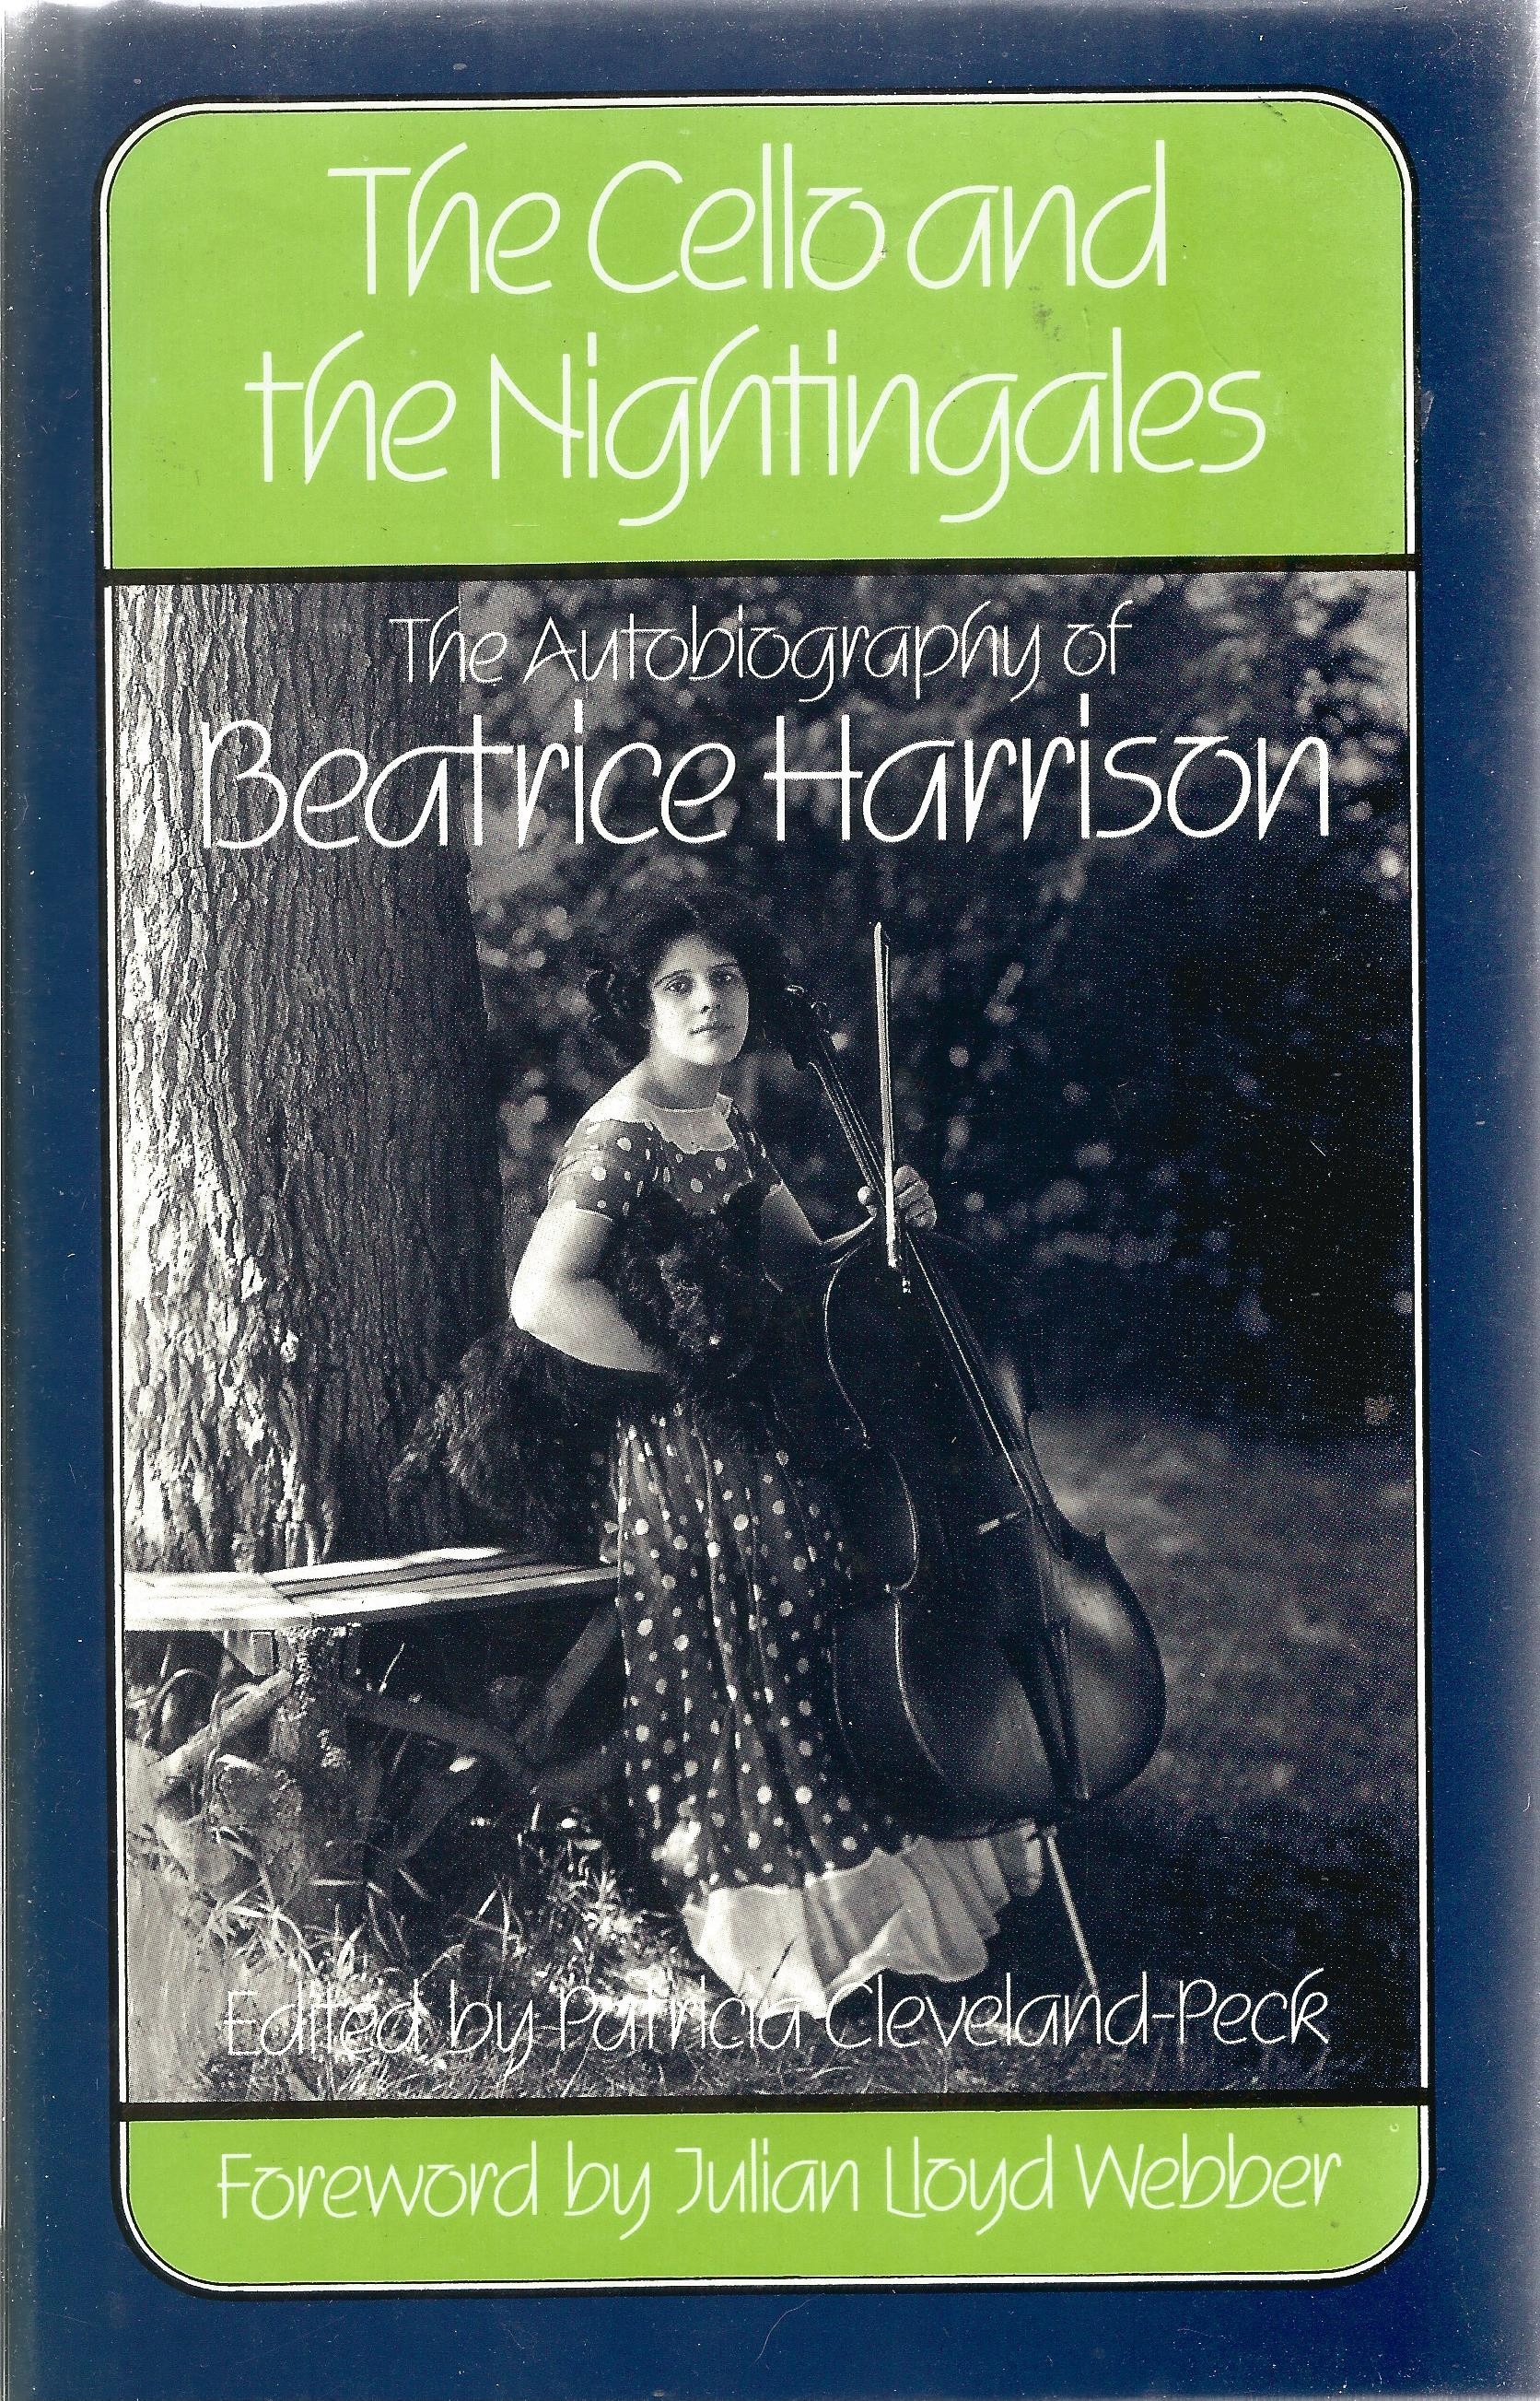 Beatrice Harrison hardback book The Cello and the Nightingales The Autobiography of Beatrice